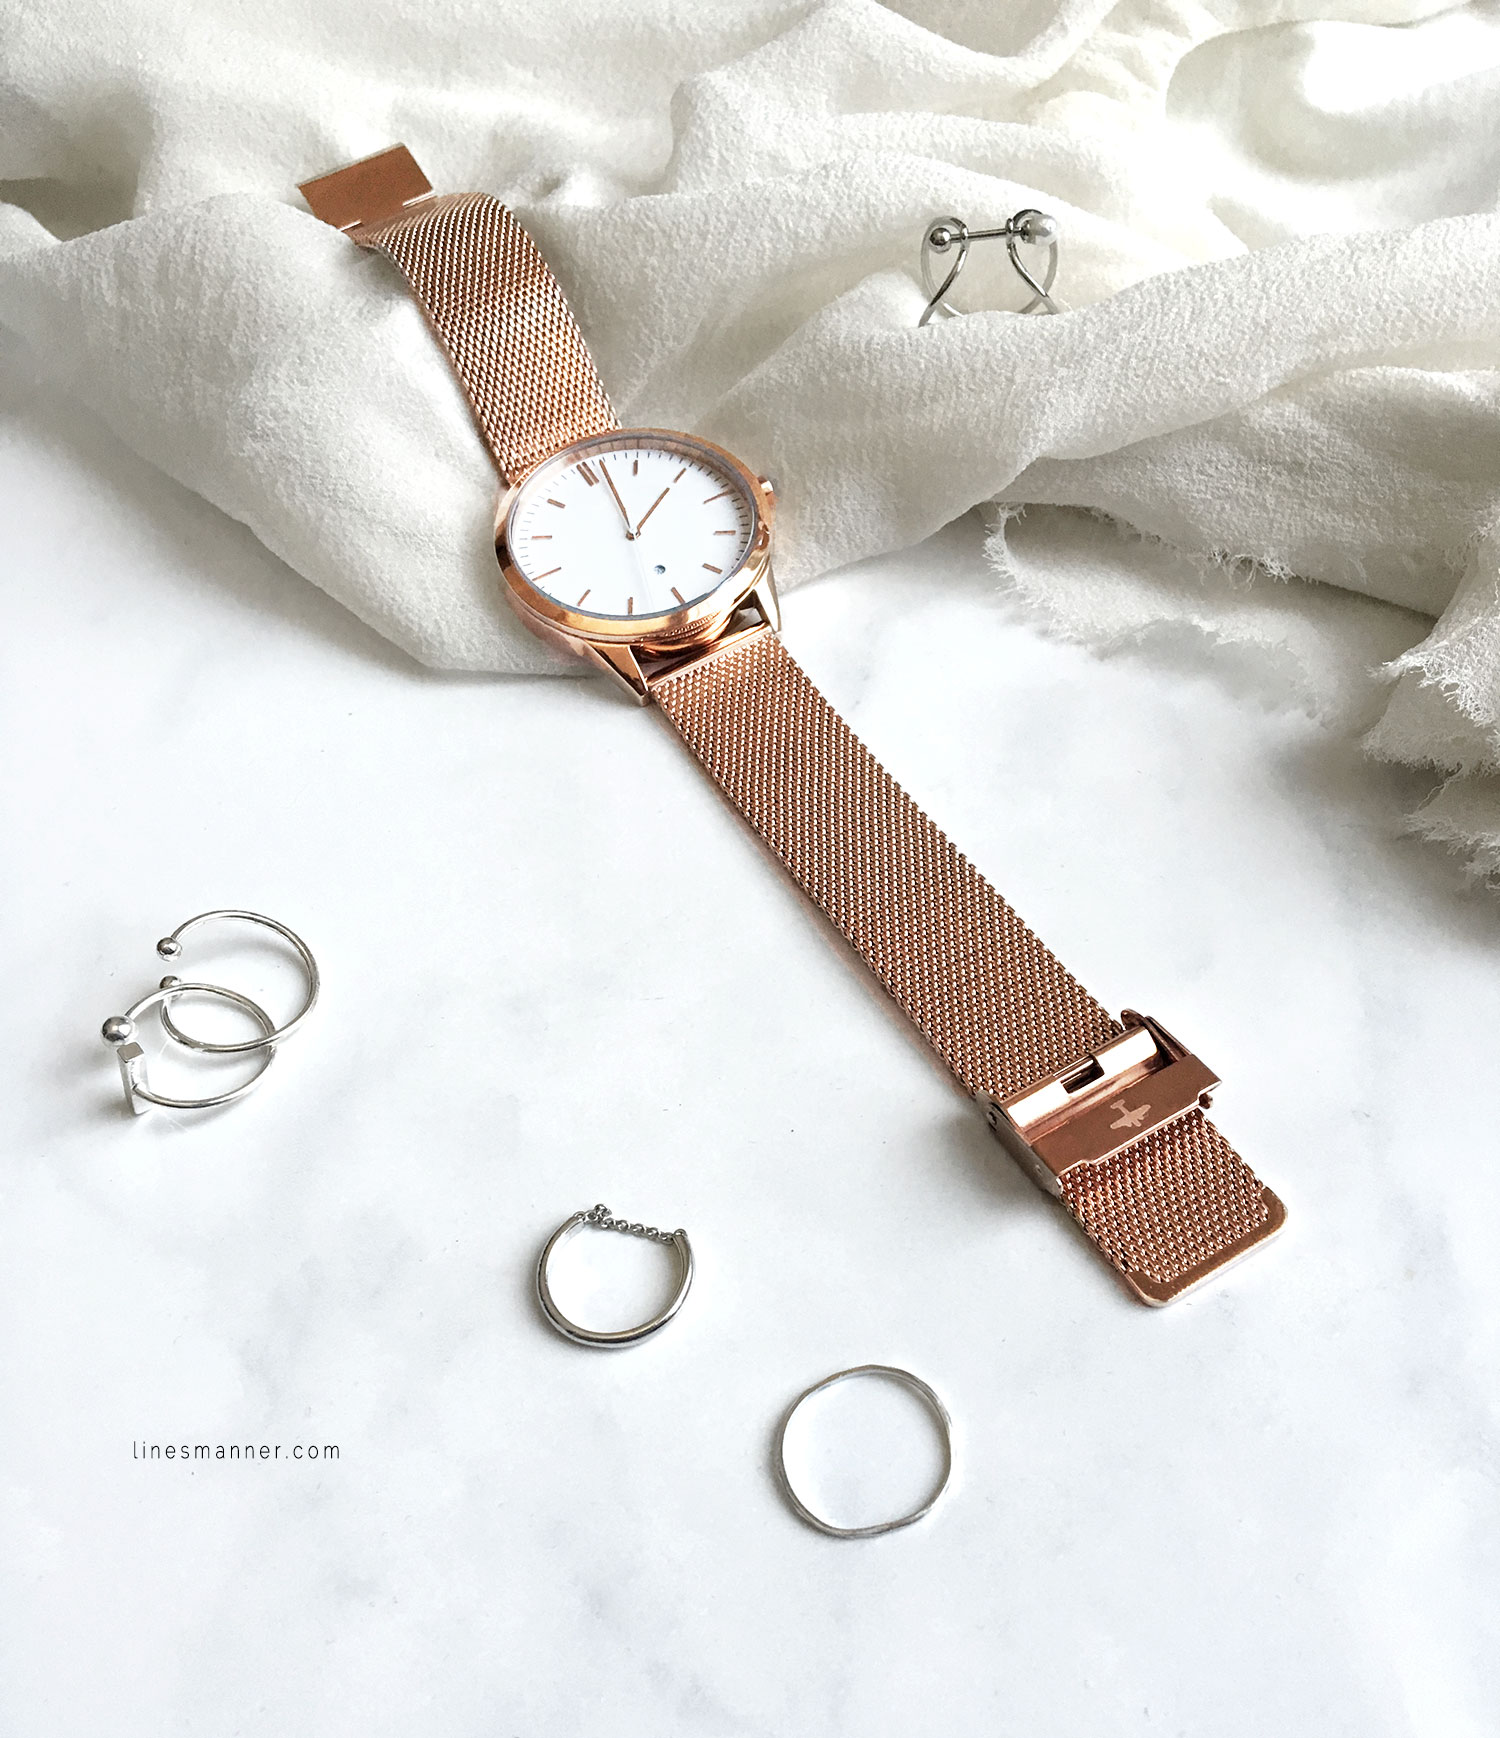 Lines-Manner-Rose_Gold-Under_The_Sun-Details-Essentials-Delicate-Minimal-Watch-Elegant-Effortless-5